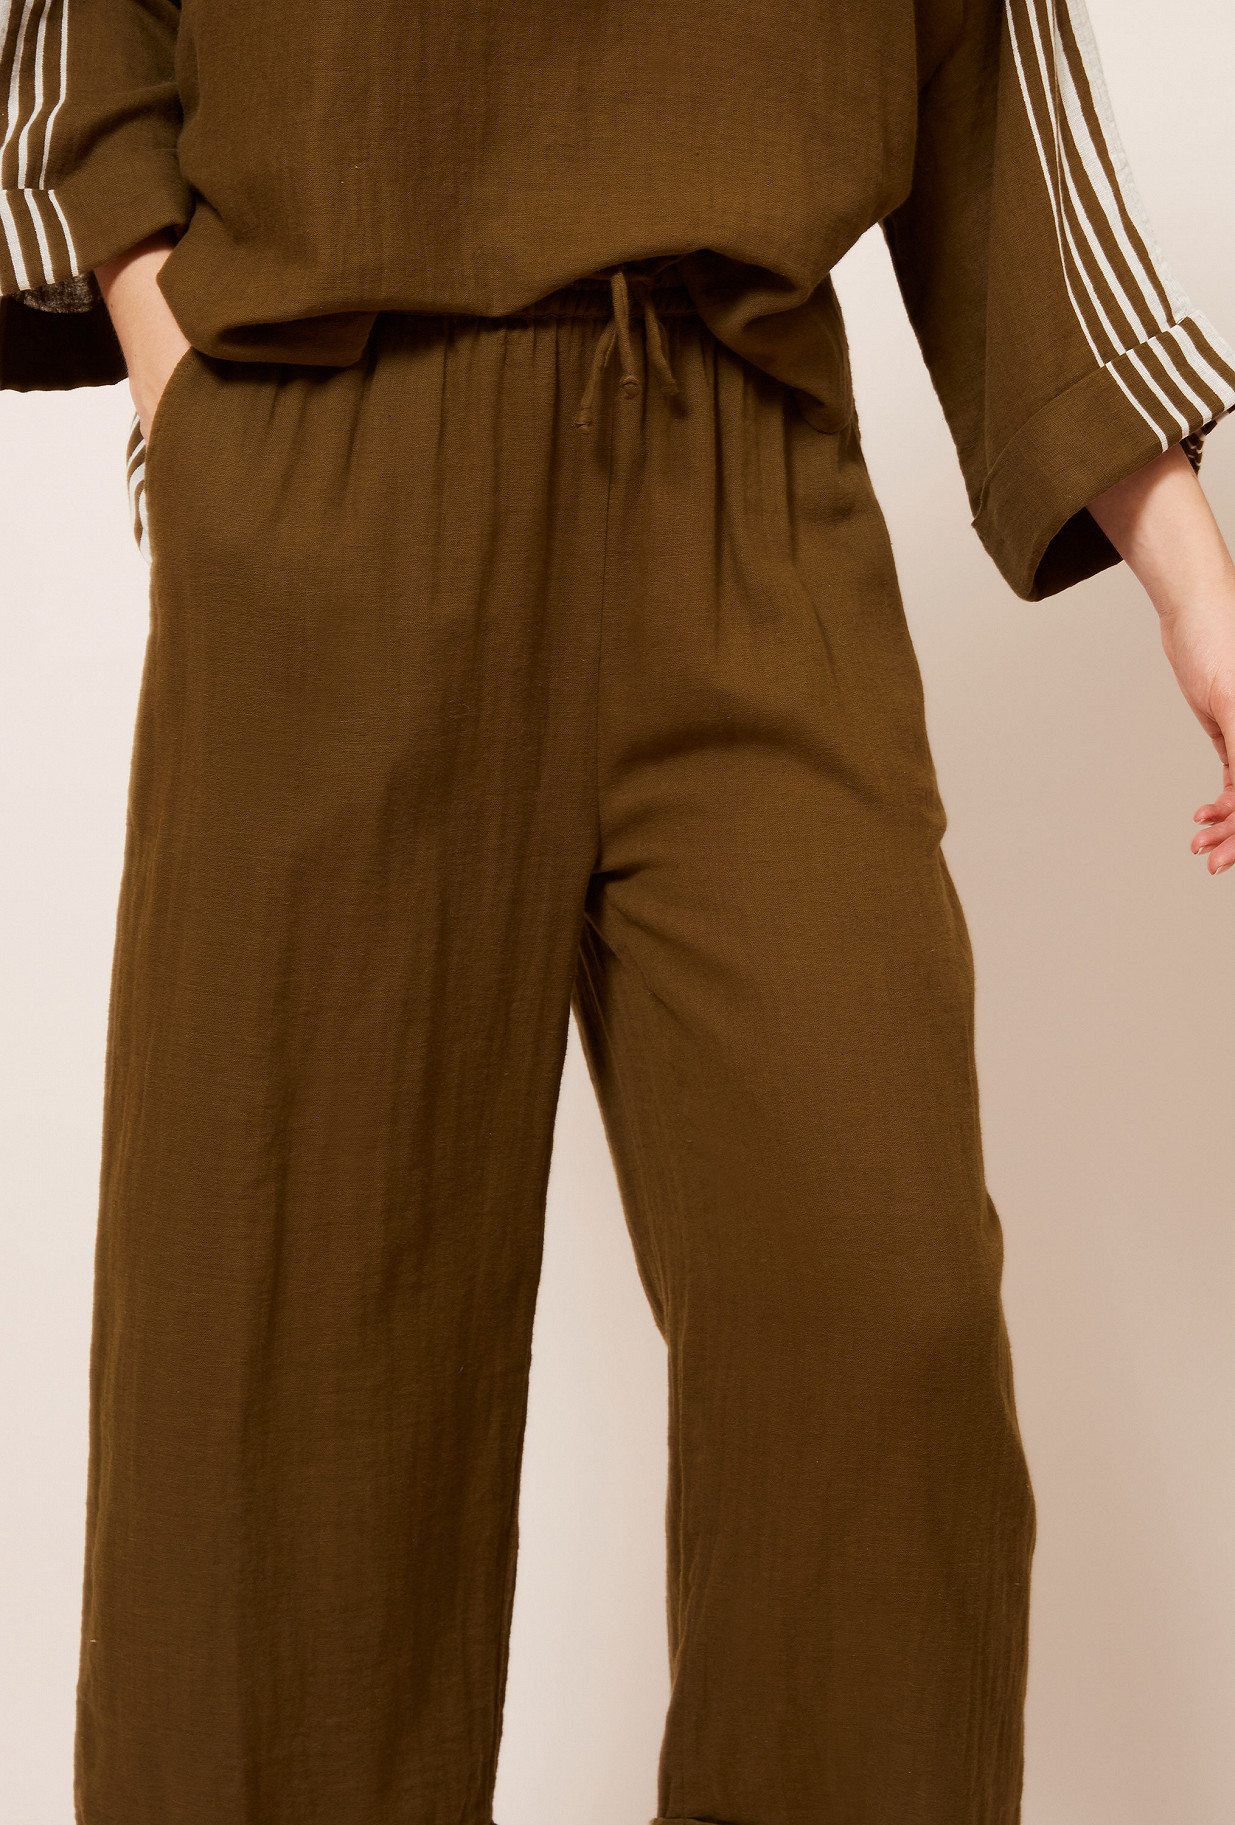 clothes store Pant  Adidaney french designer fashion Paris